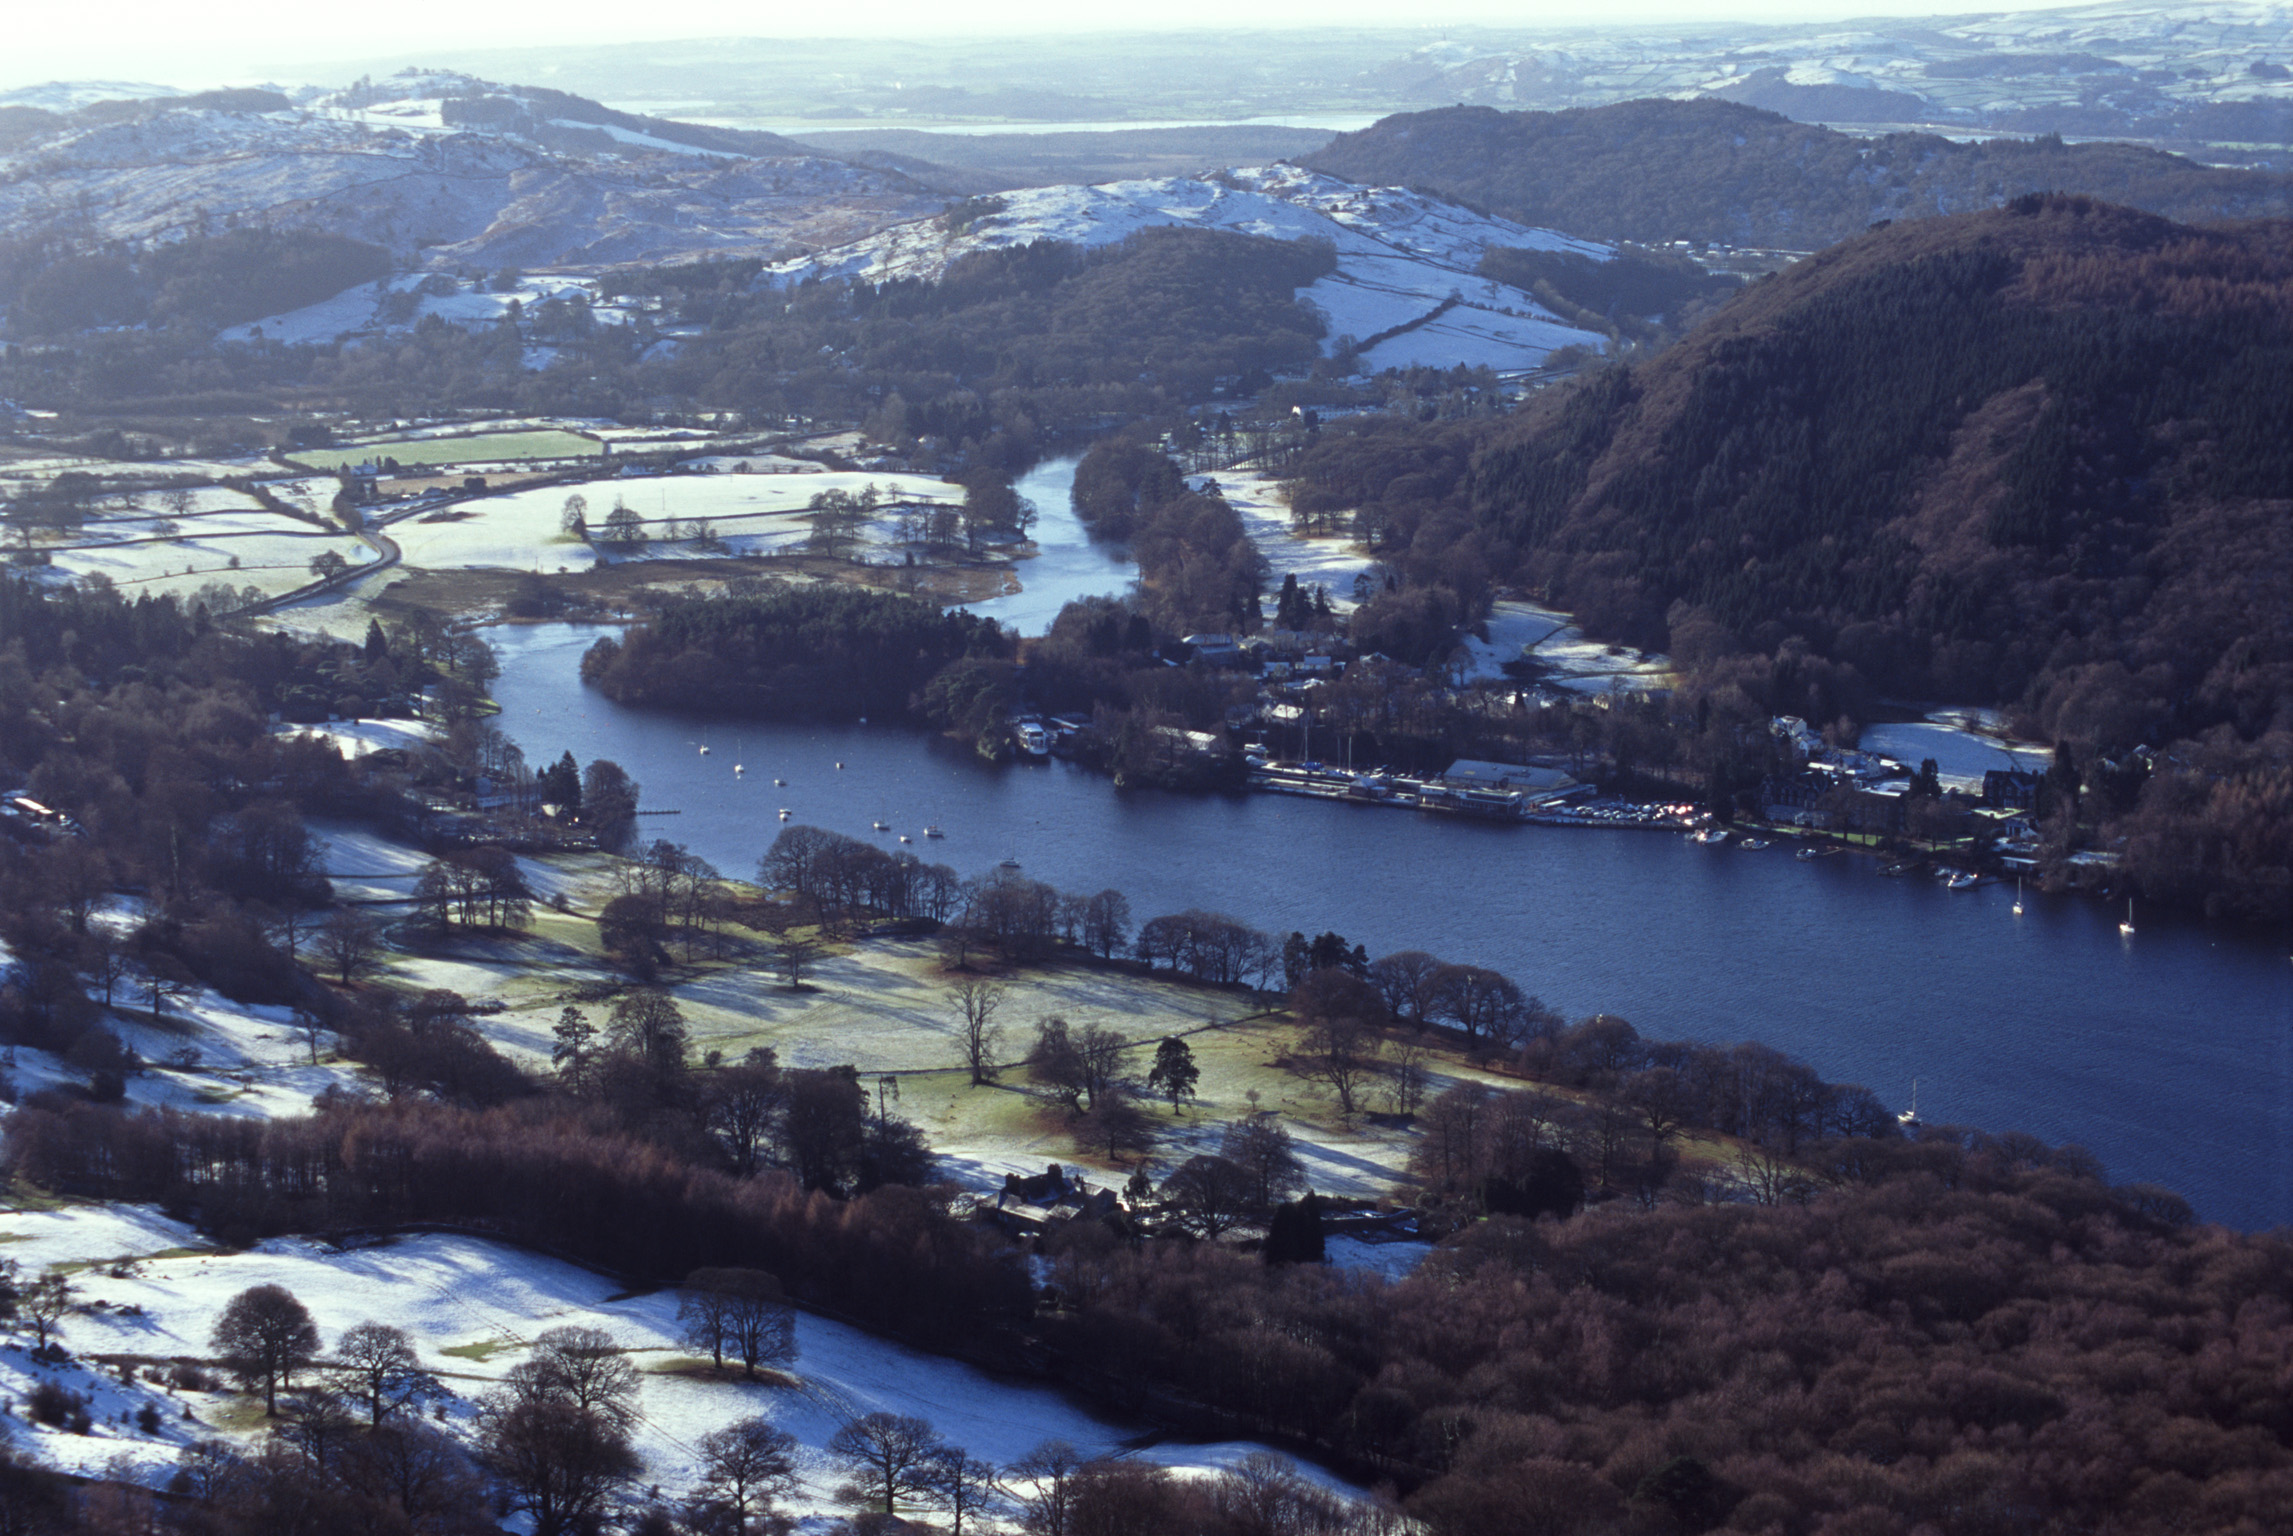 newby bridge and lake side on windermere